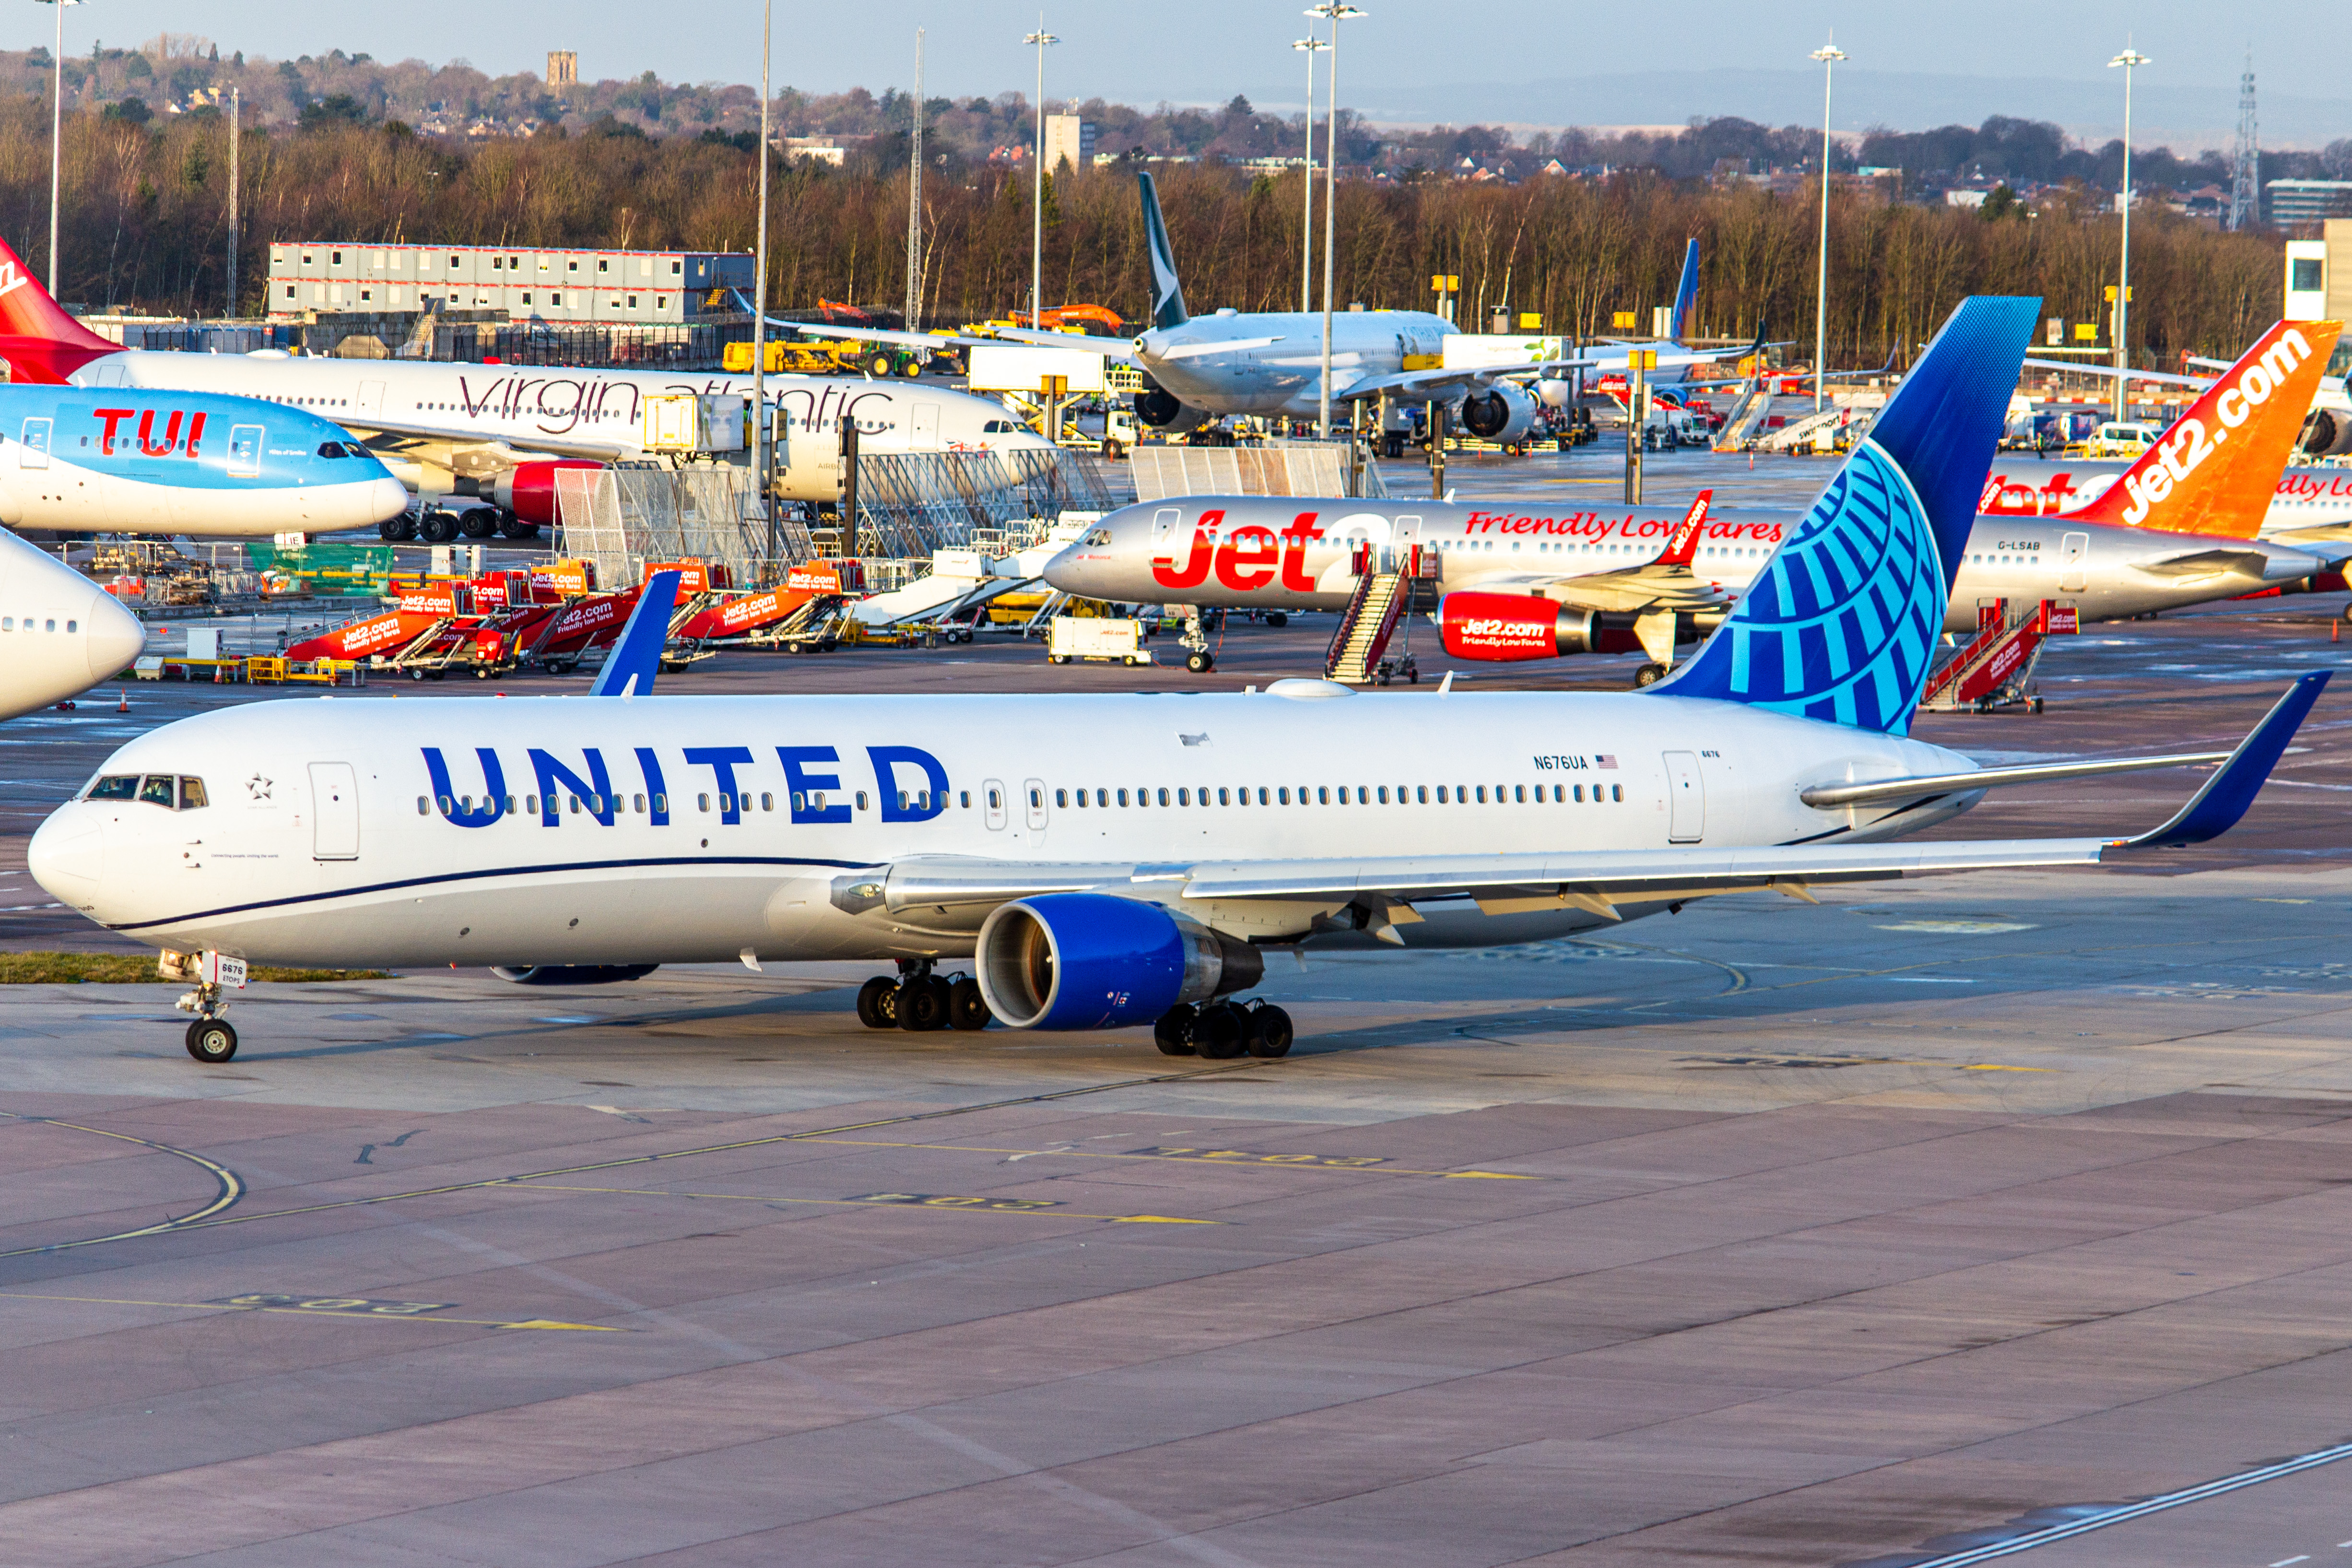 Photo of N676UA - United Airlines Boeing 767-300ER at MAN